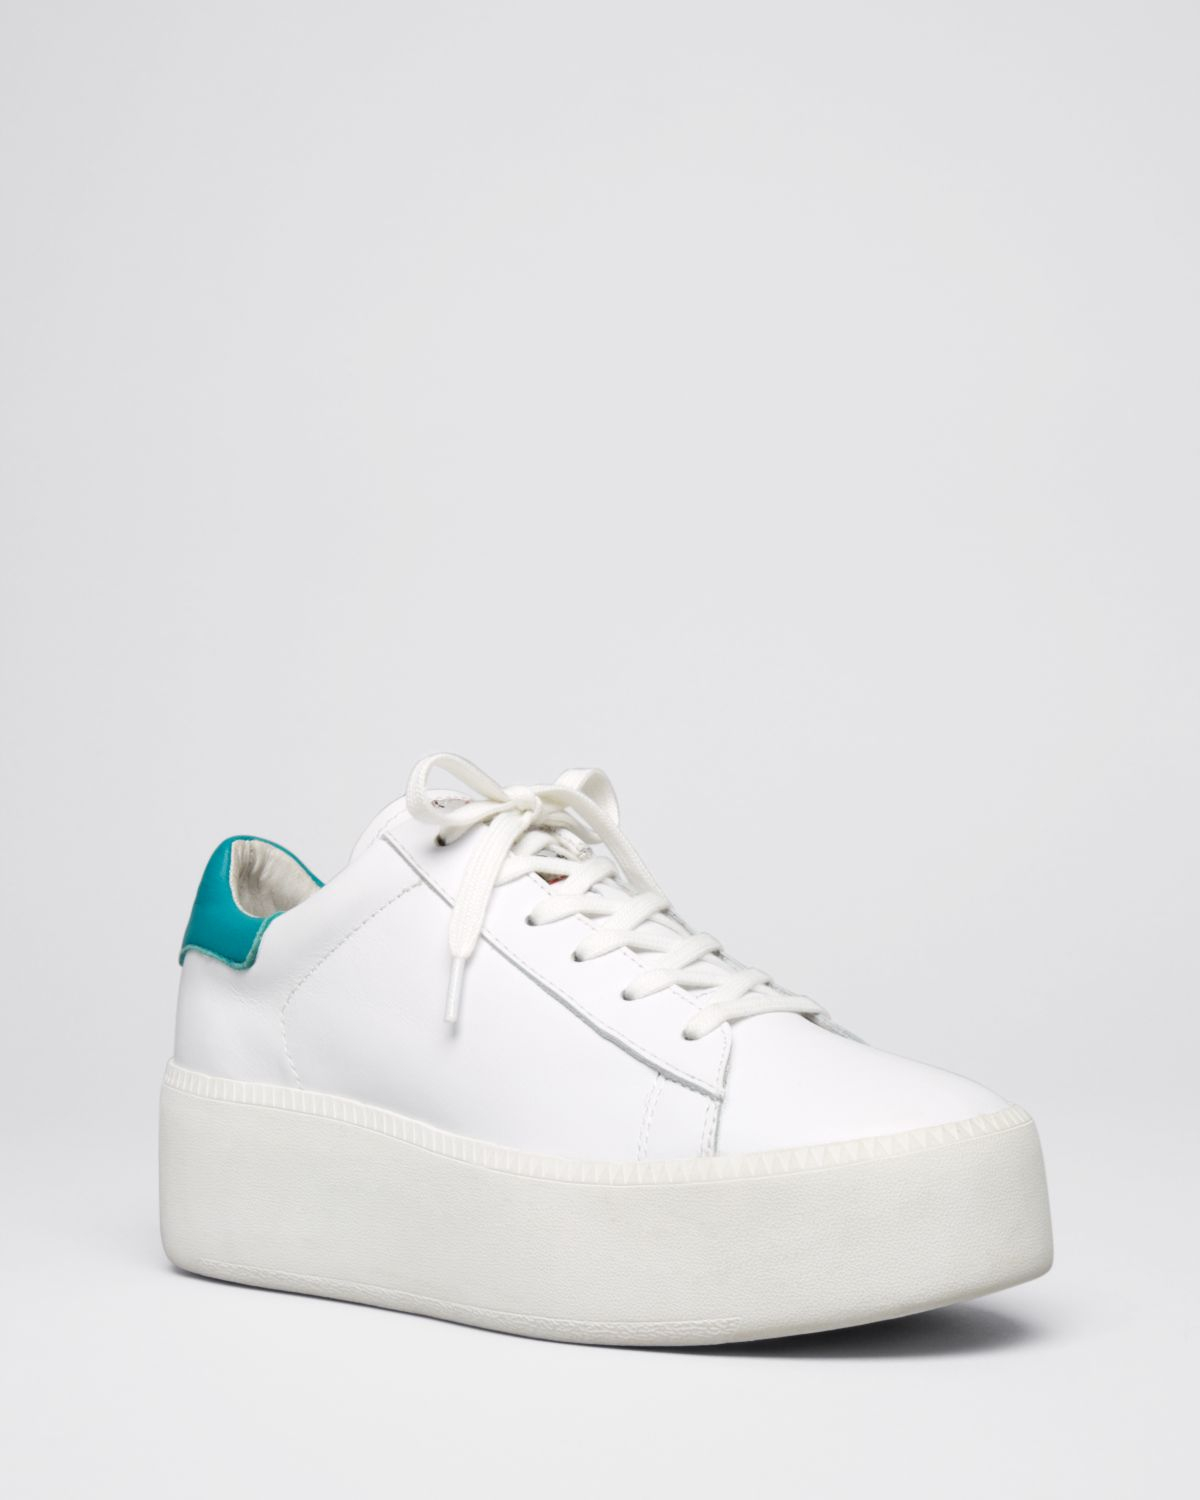 Ash Platform Lace Up Sneakers - Cult in White | Lyst